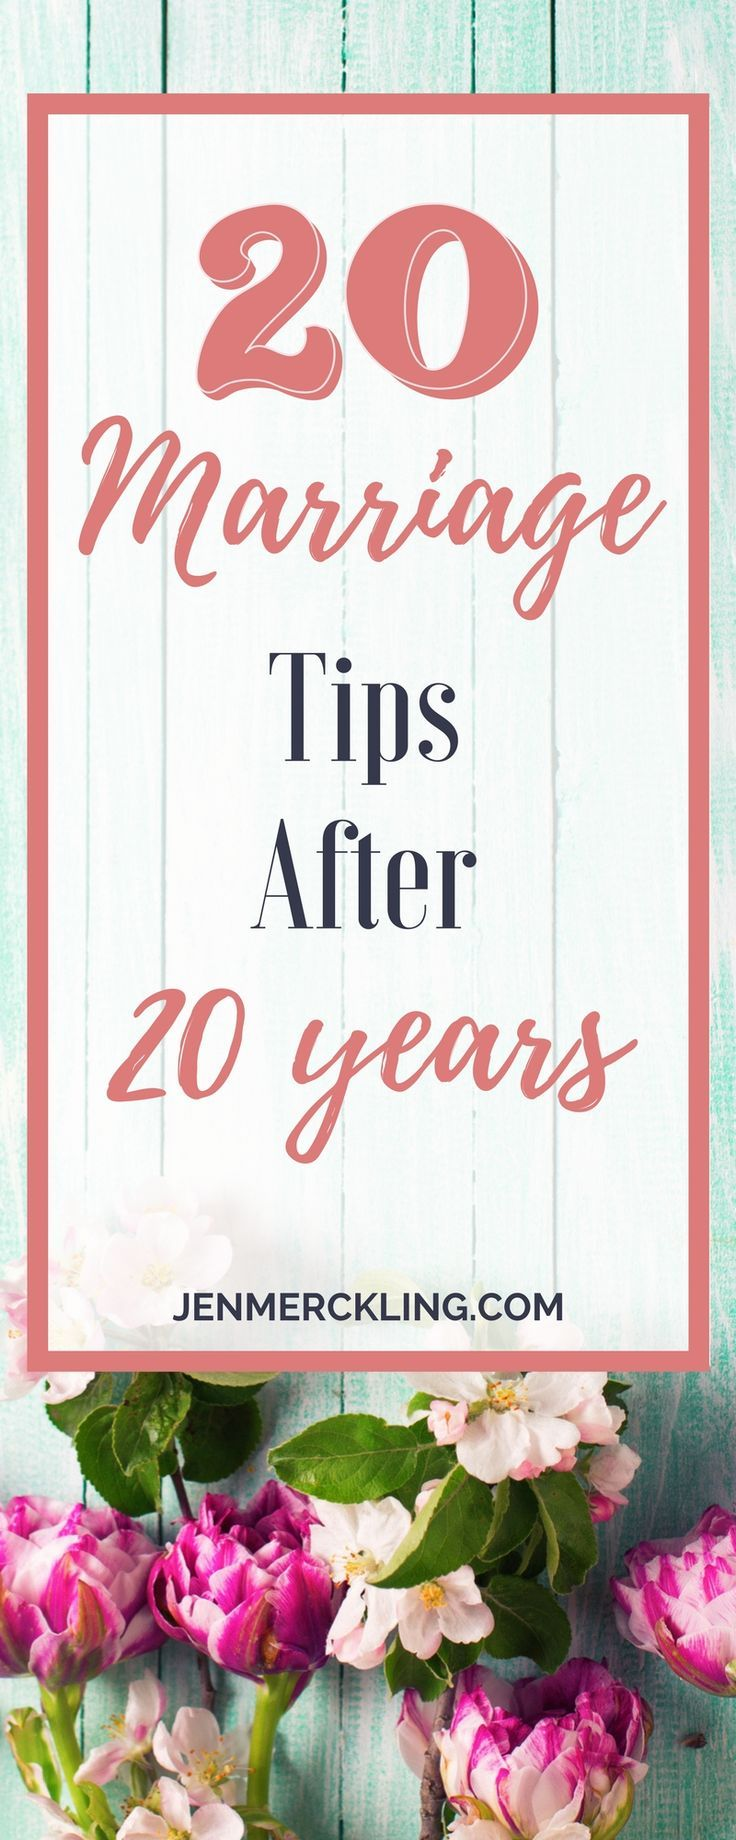 Last summer we celebrated our 20th Wedding Anniversary, and I wanted to  share some reflections on what we've learned over the years! Hope some of  the tips ...